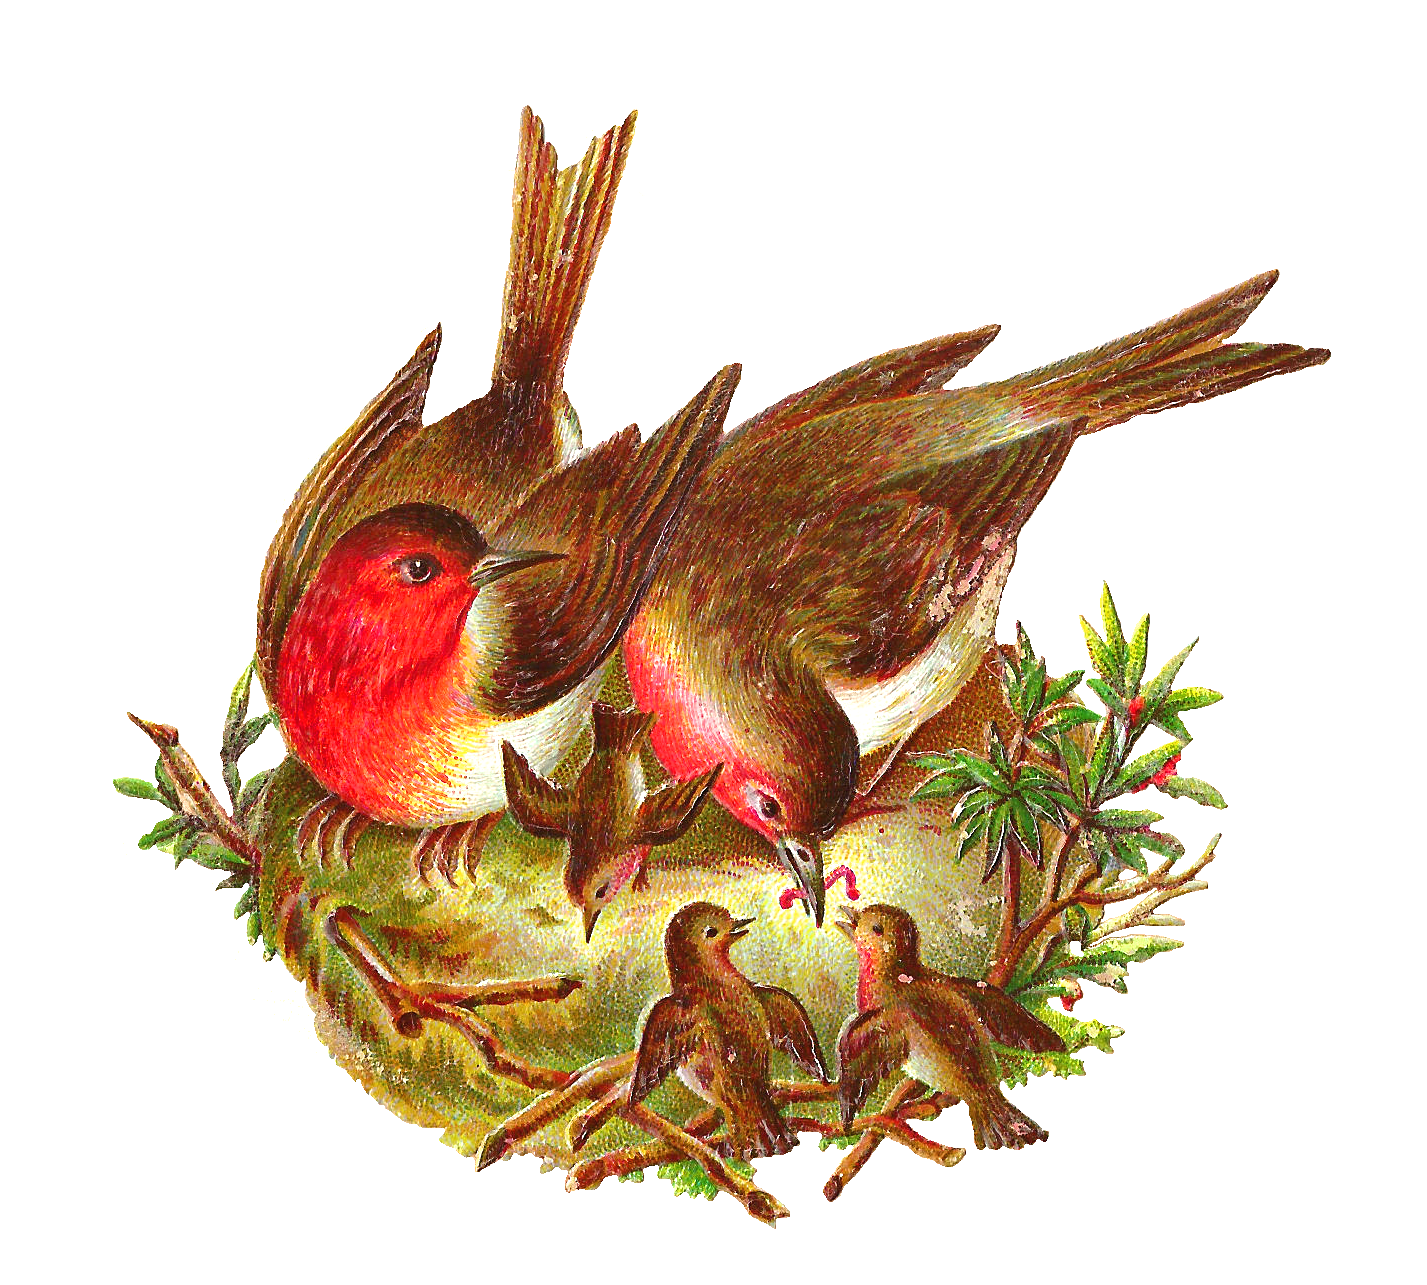 Antique Images: Free Bird Graphic: 2 Birds in Nest Feeding Baby Birds ...